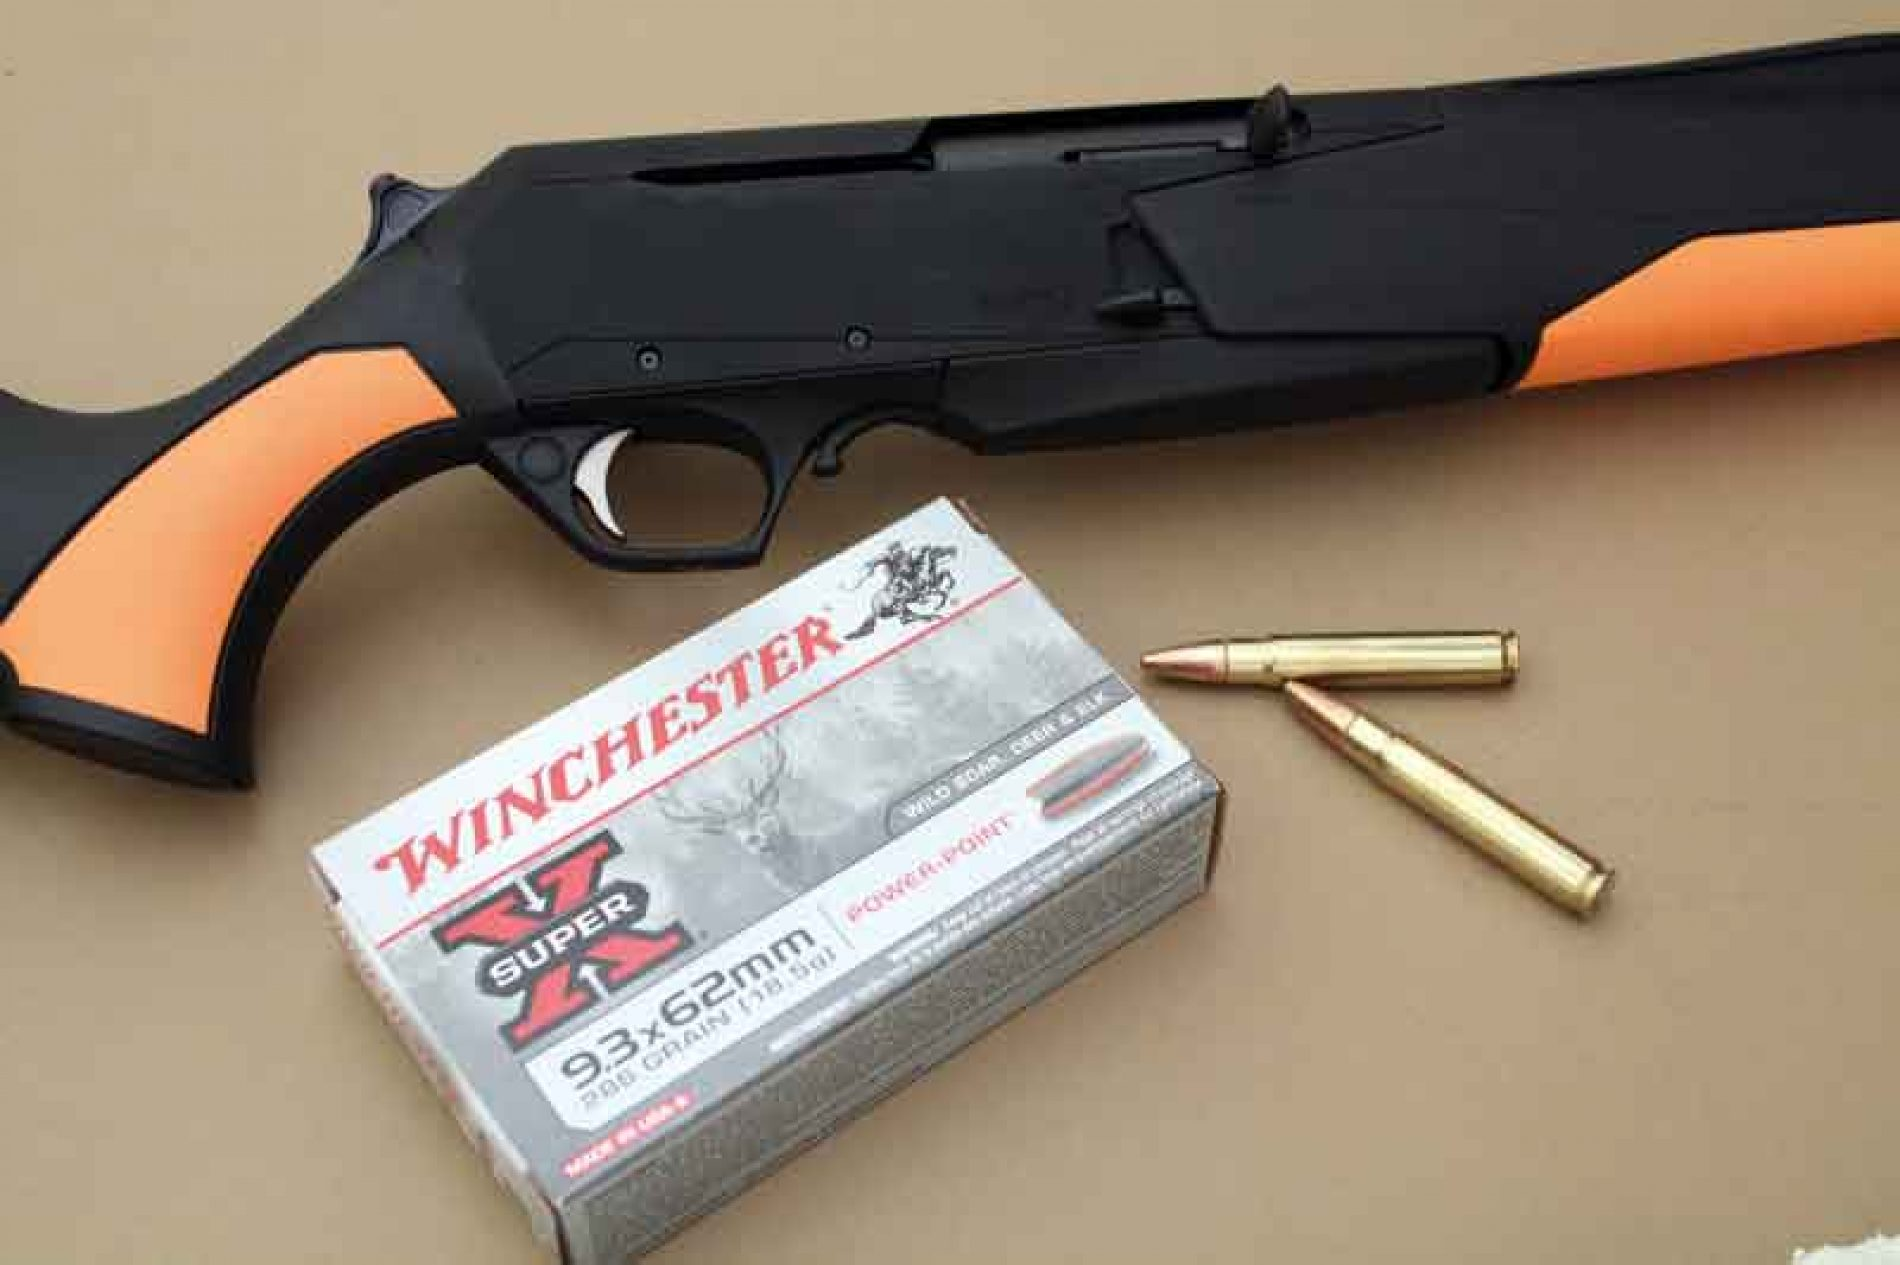 Rifle Browning BAR MK3 Tracker HC para cazar en montería